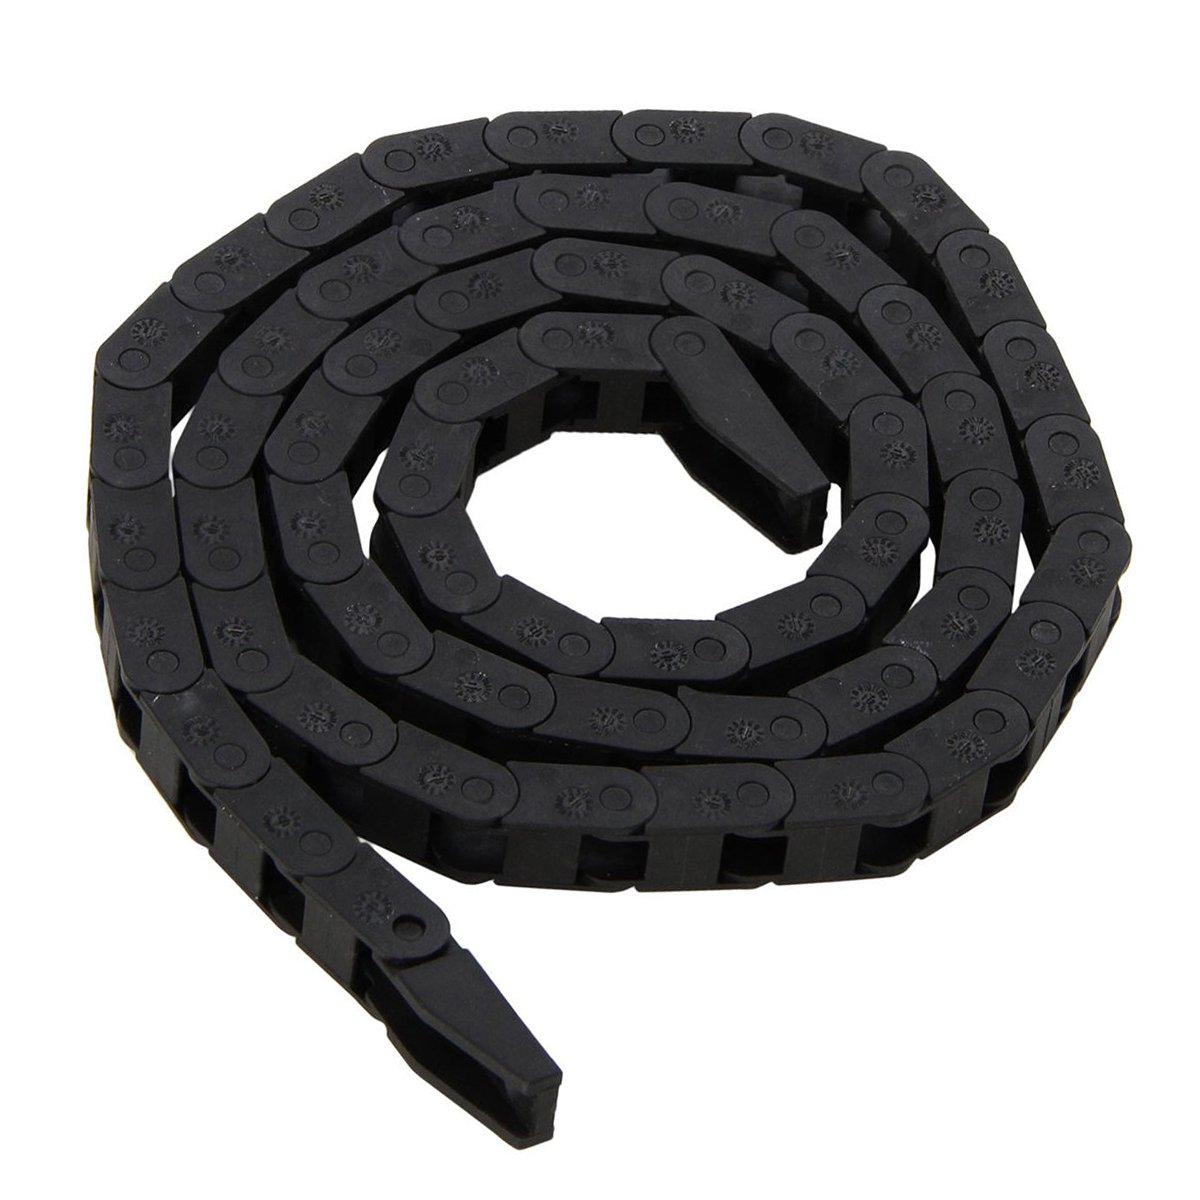 Black CNC Machine Tool 77mm Mayitr Plastic Nylon Cable Carrier Drag Chain Nested Wire Carriers Transmission Chains Towline